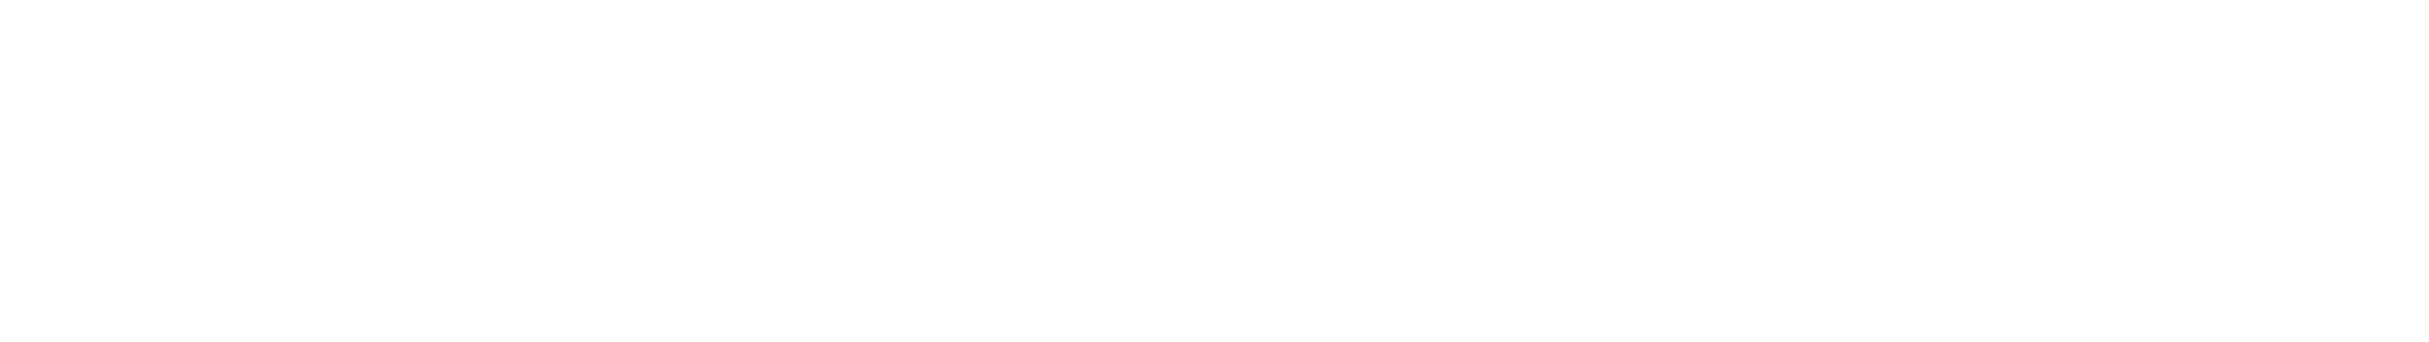 International Association of Real Estate Professionals